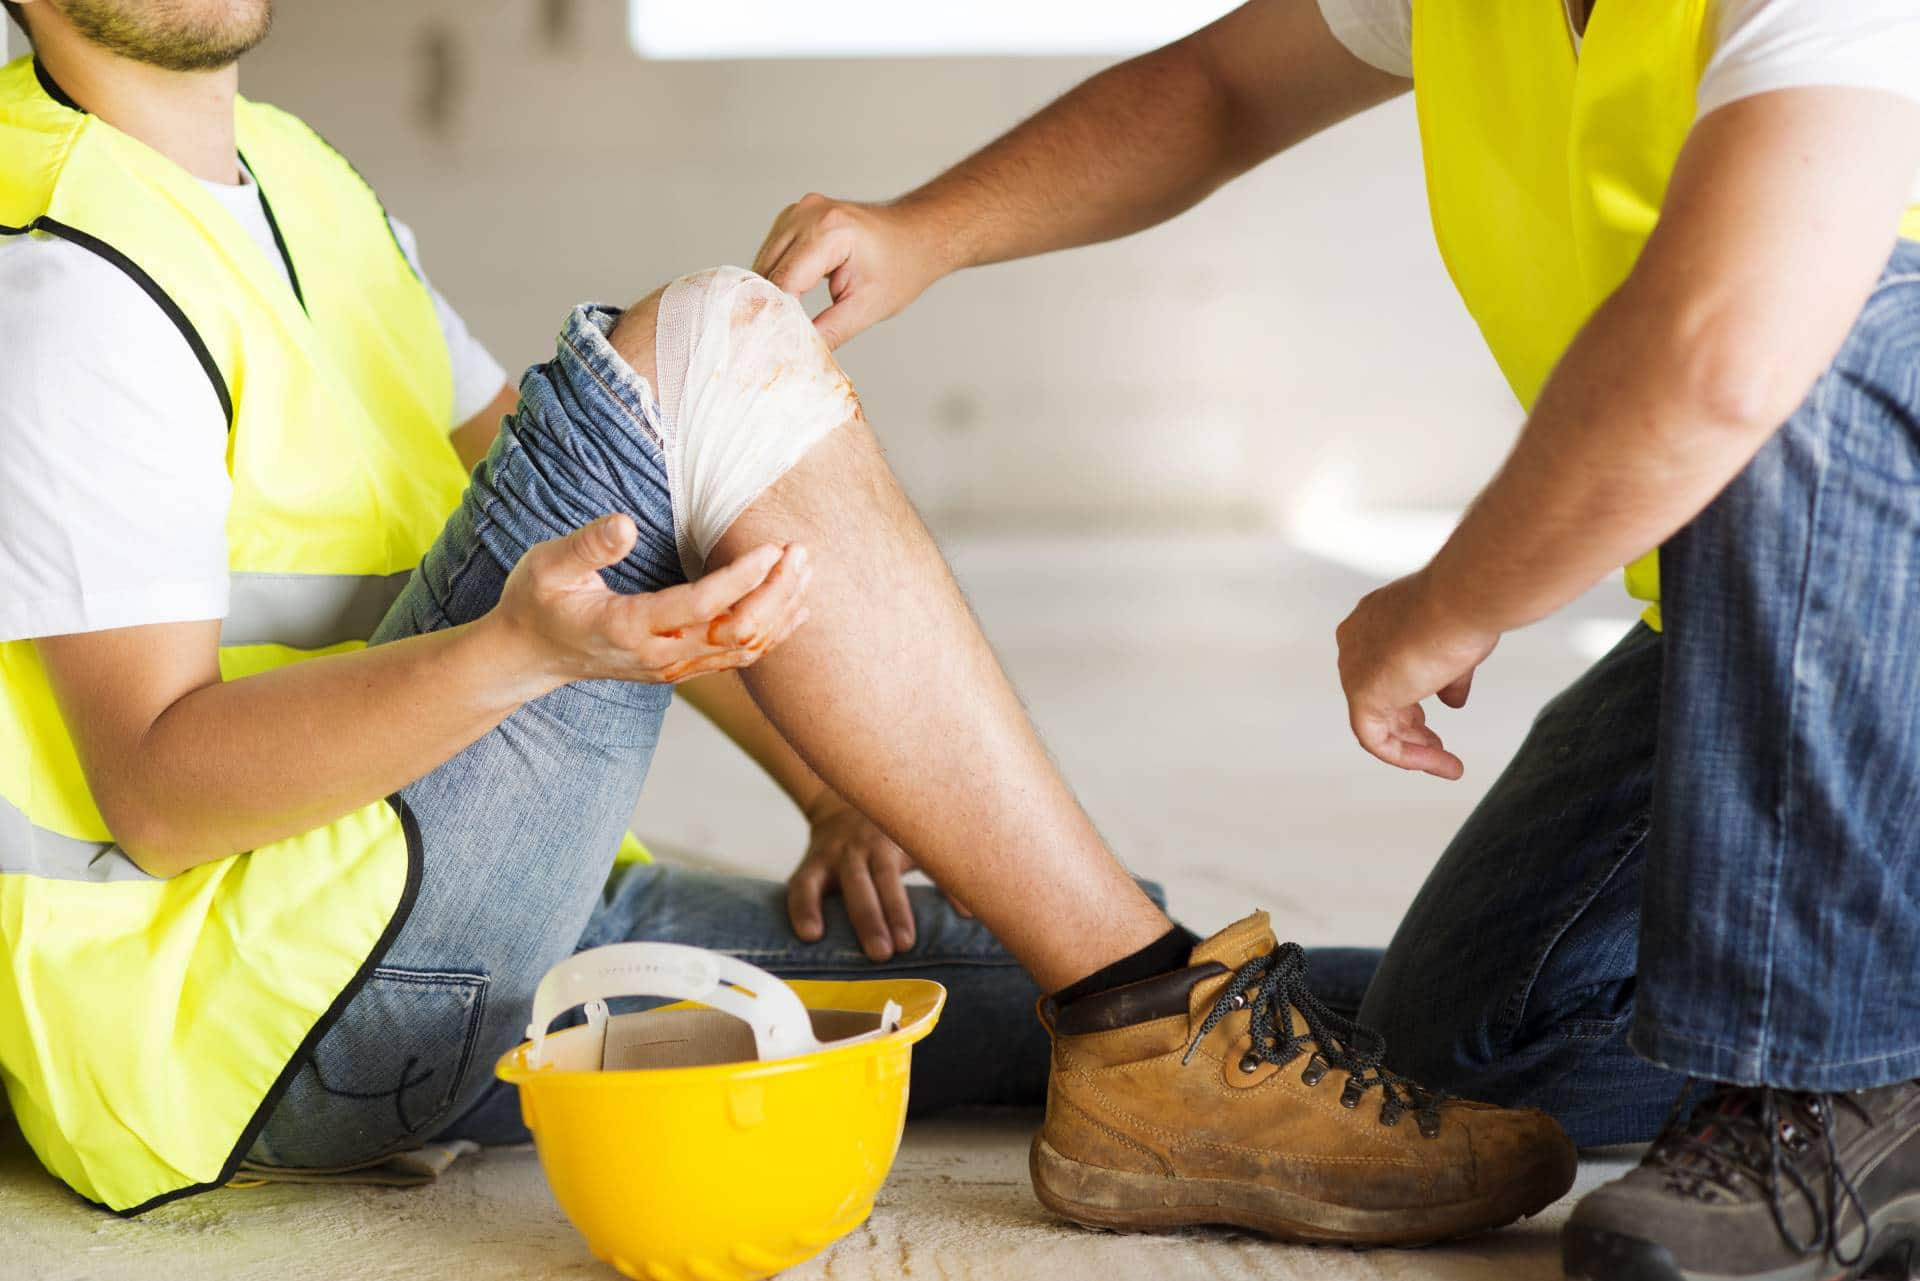 Injured on the job? Schedule a free consulation with the Angell Law Firm.